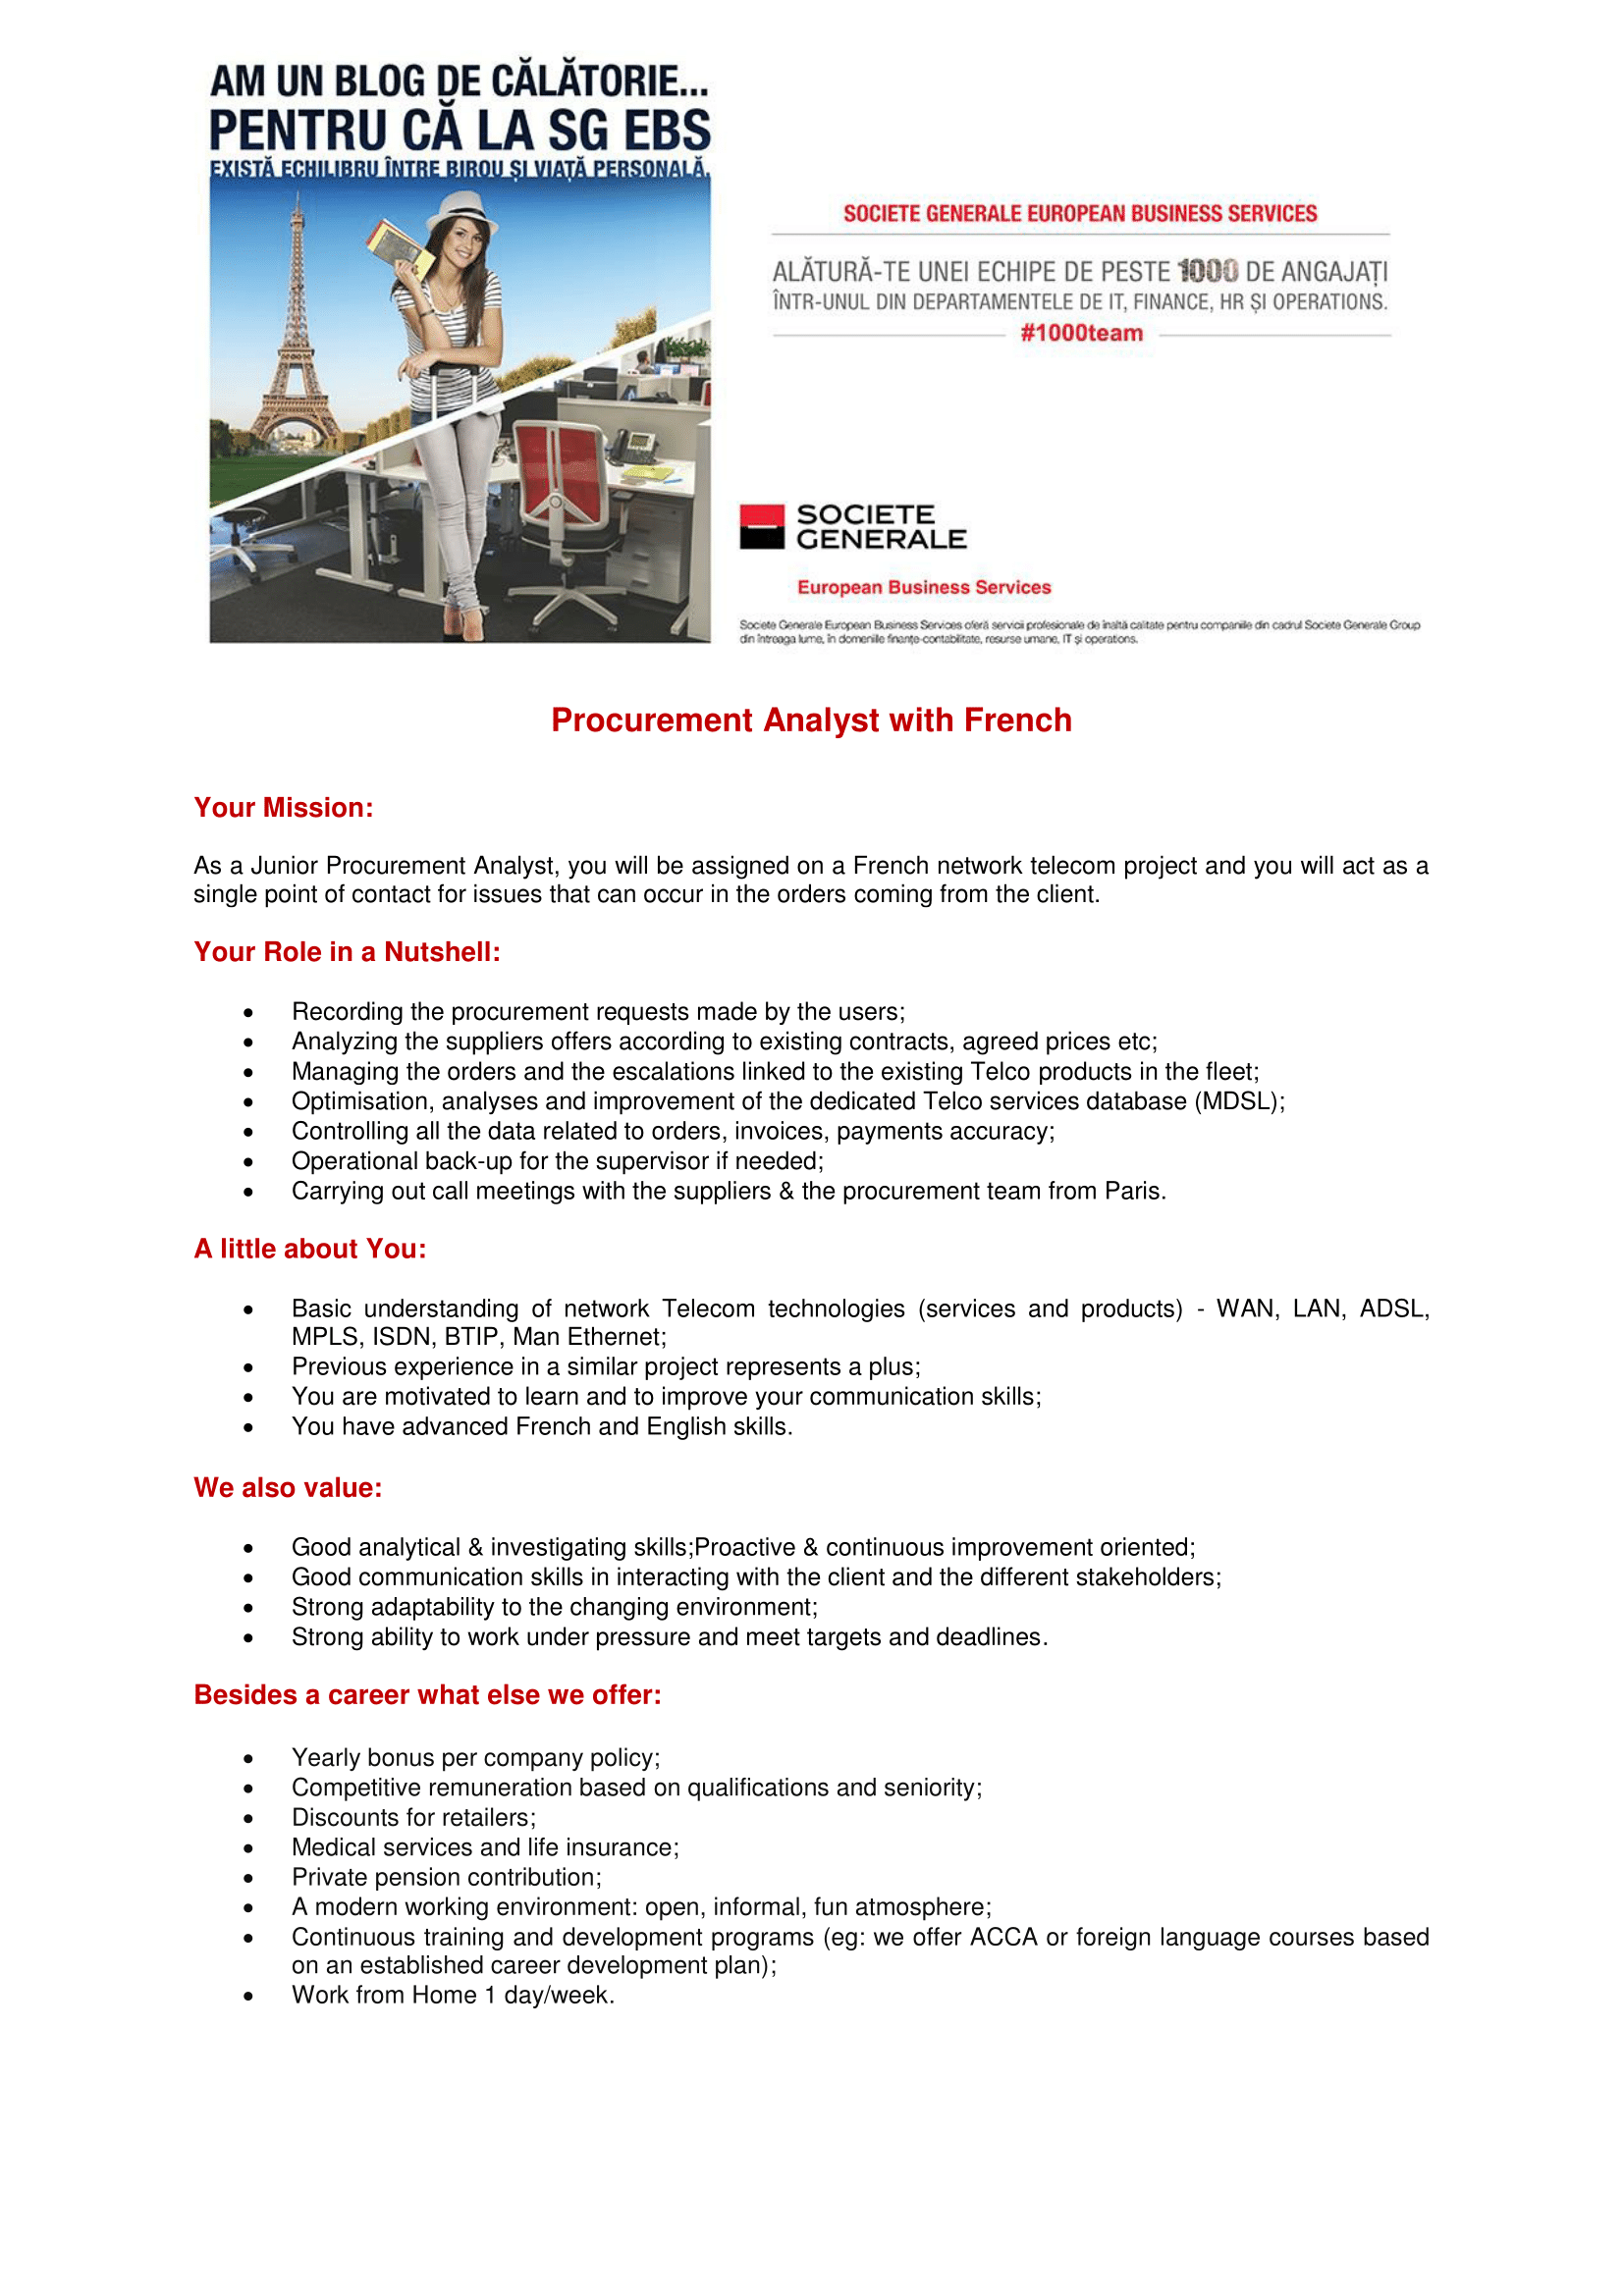 ProcurementAnalyst with French - Telecom Project-1